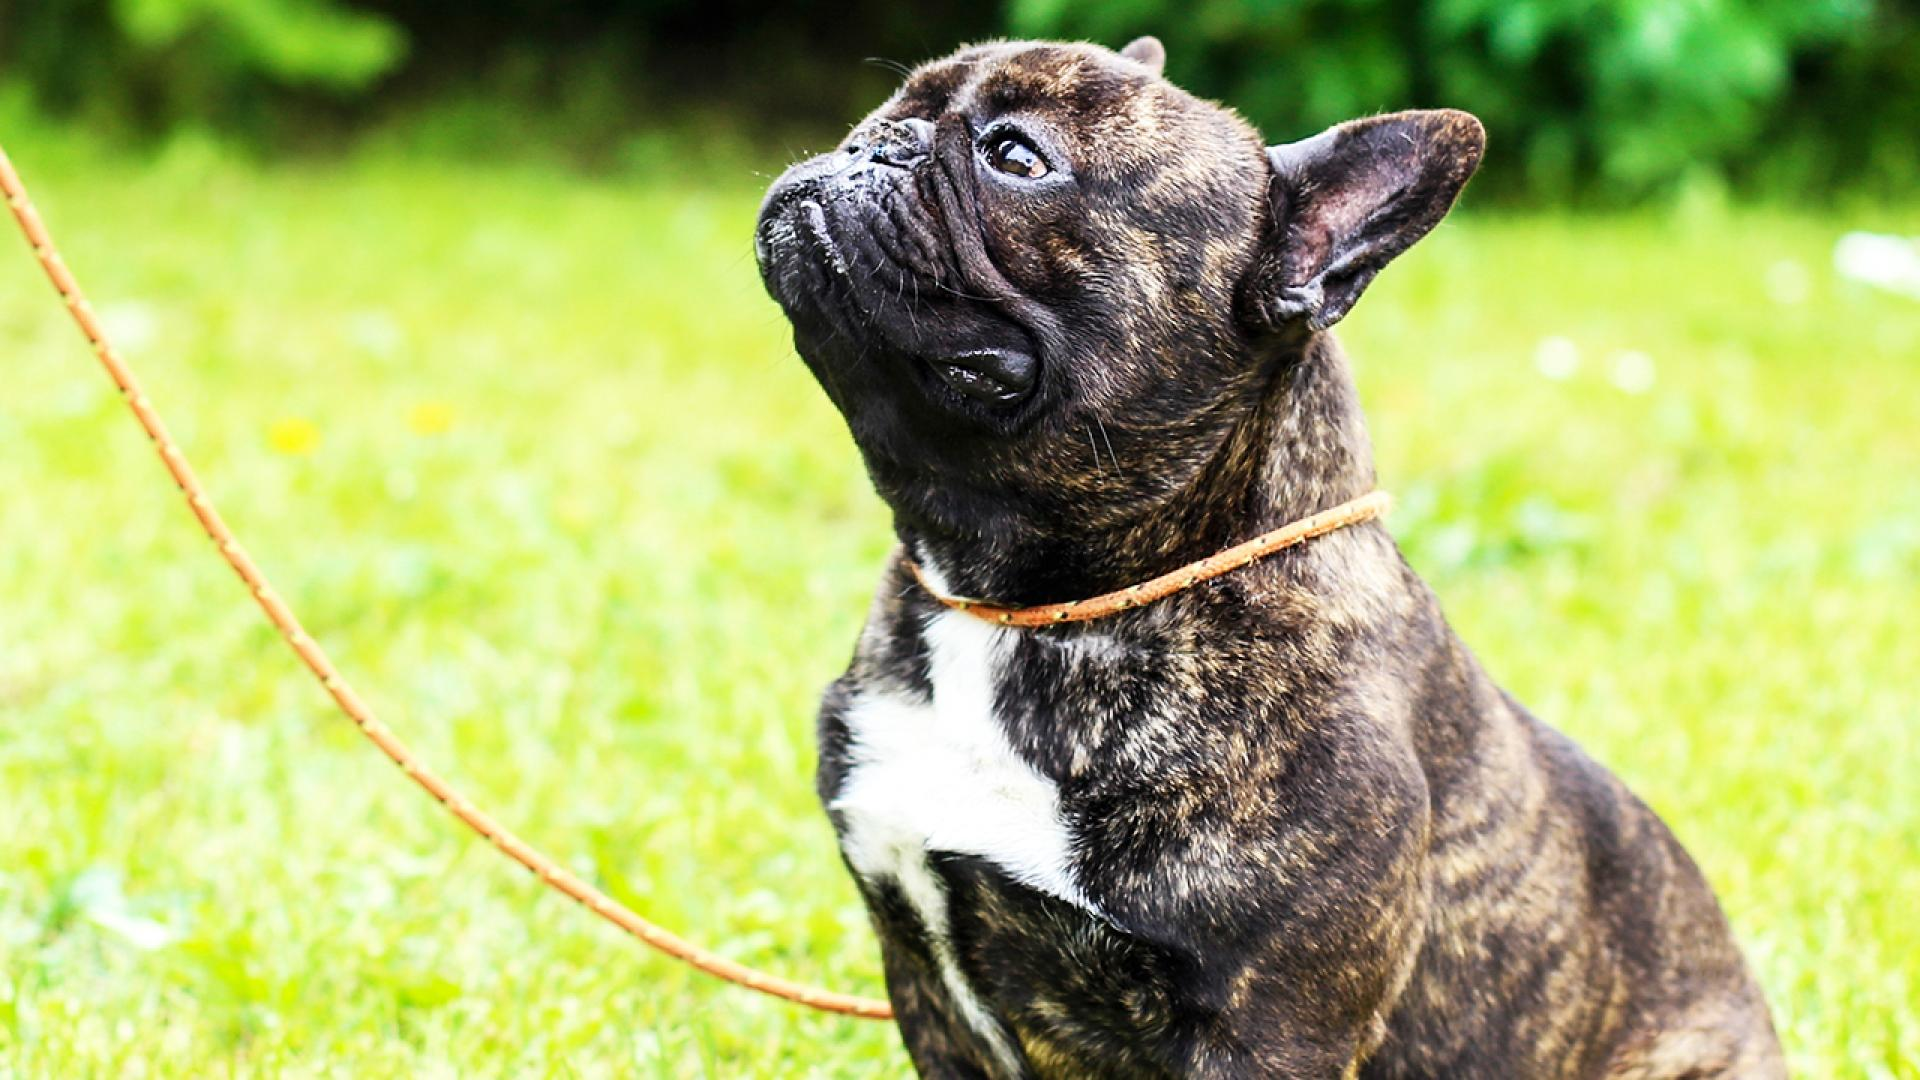 The loyal French bulldog died just 15 minutes after his owner's death.